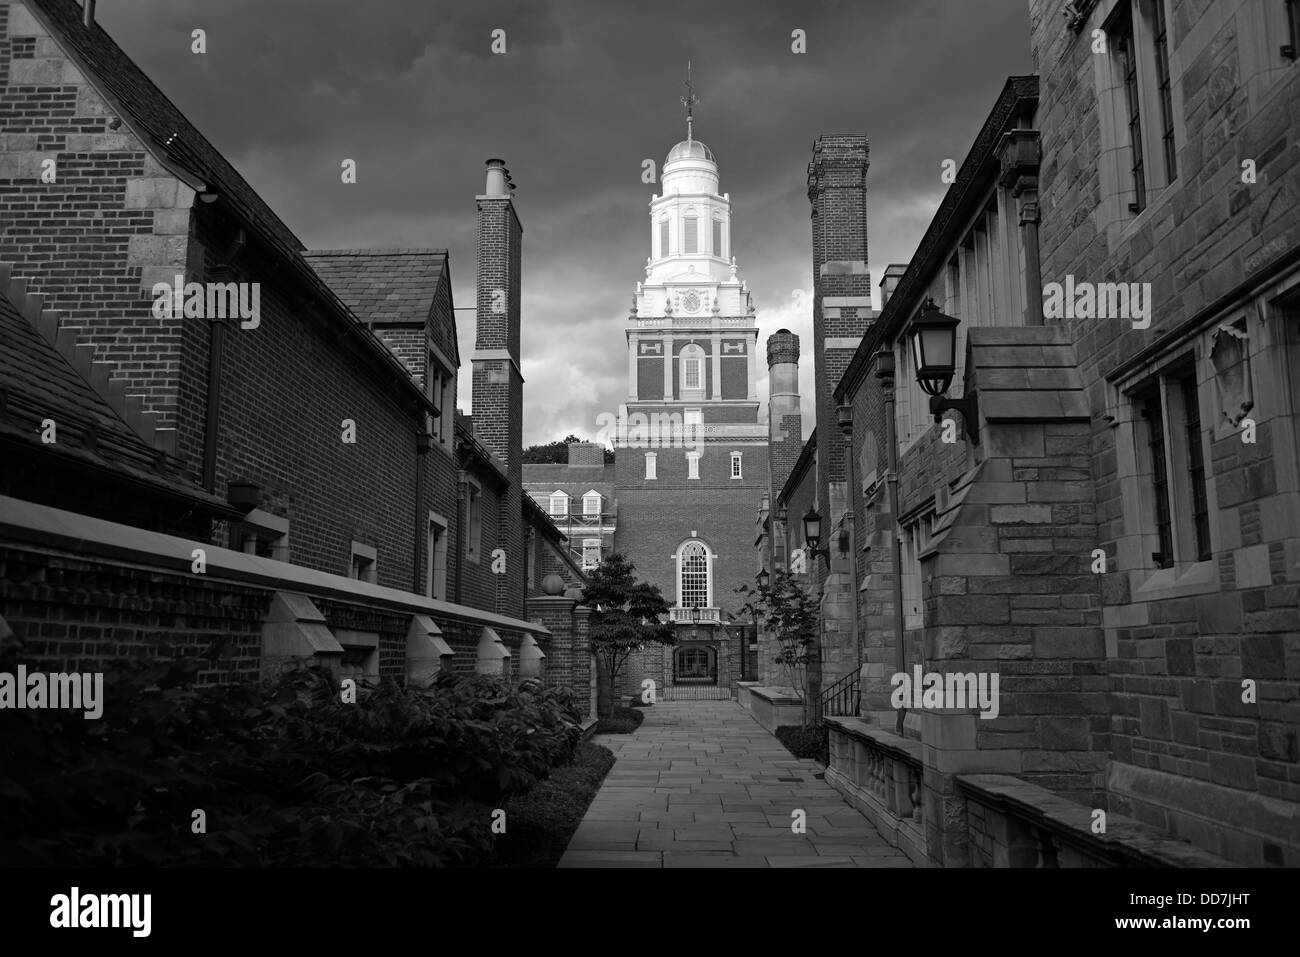 Black and white photograph of Yale residential college Pierson, New Haven, CT. - Stock Image